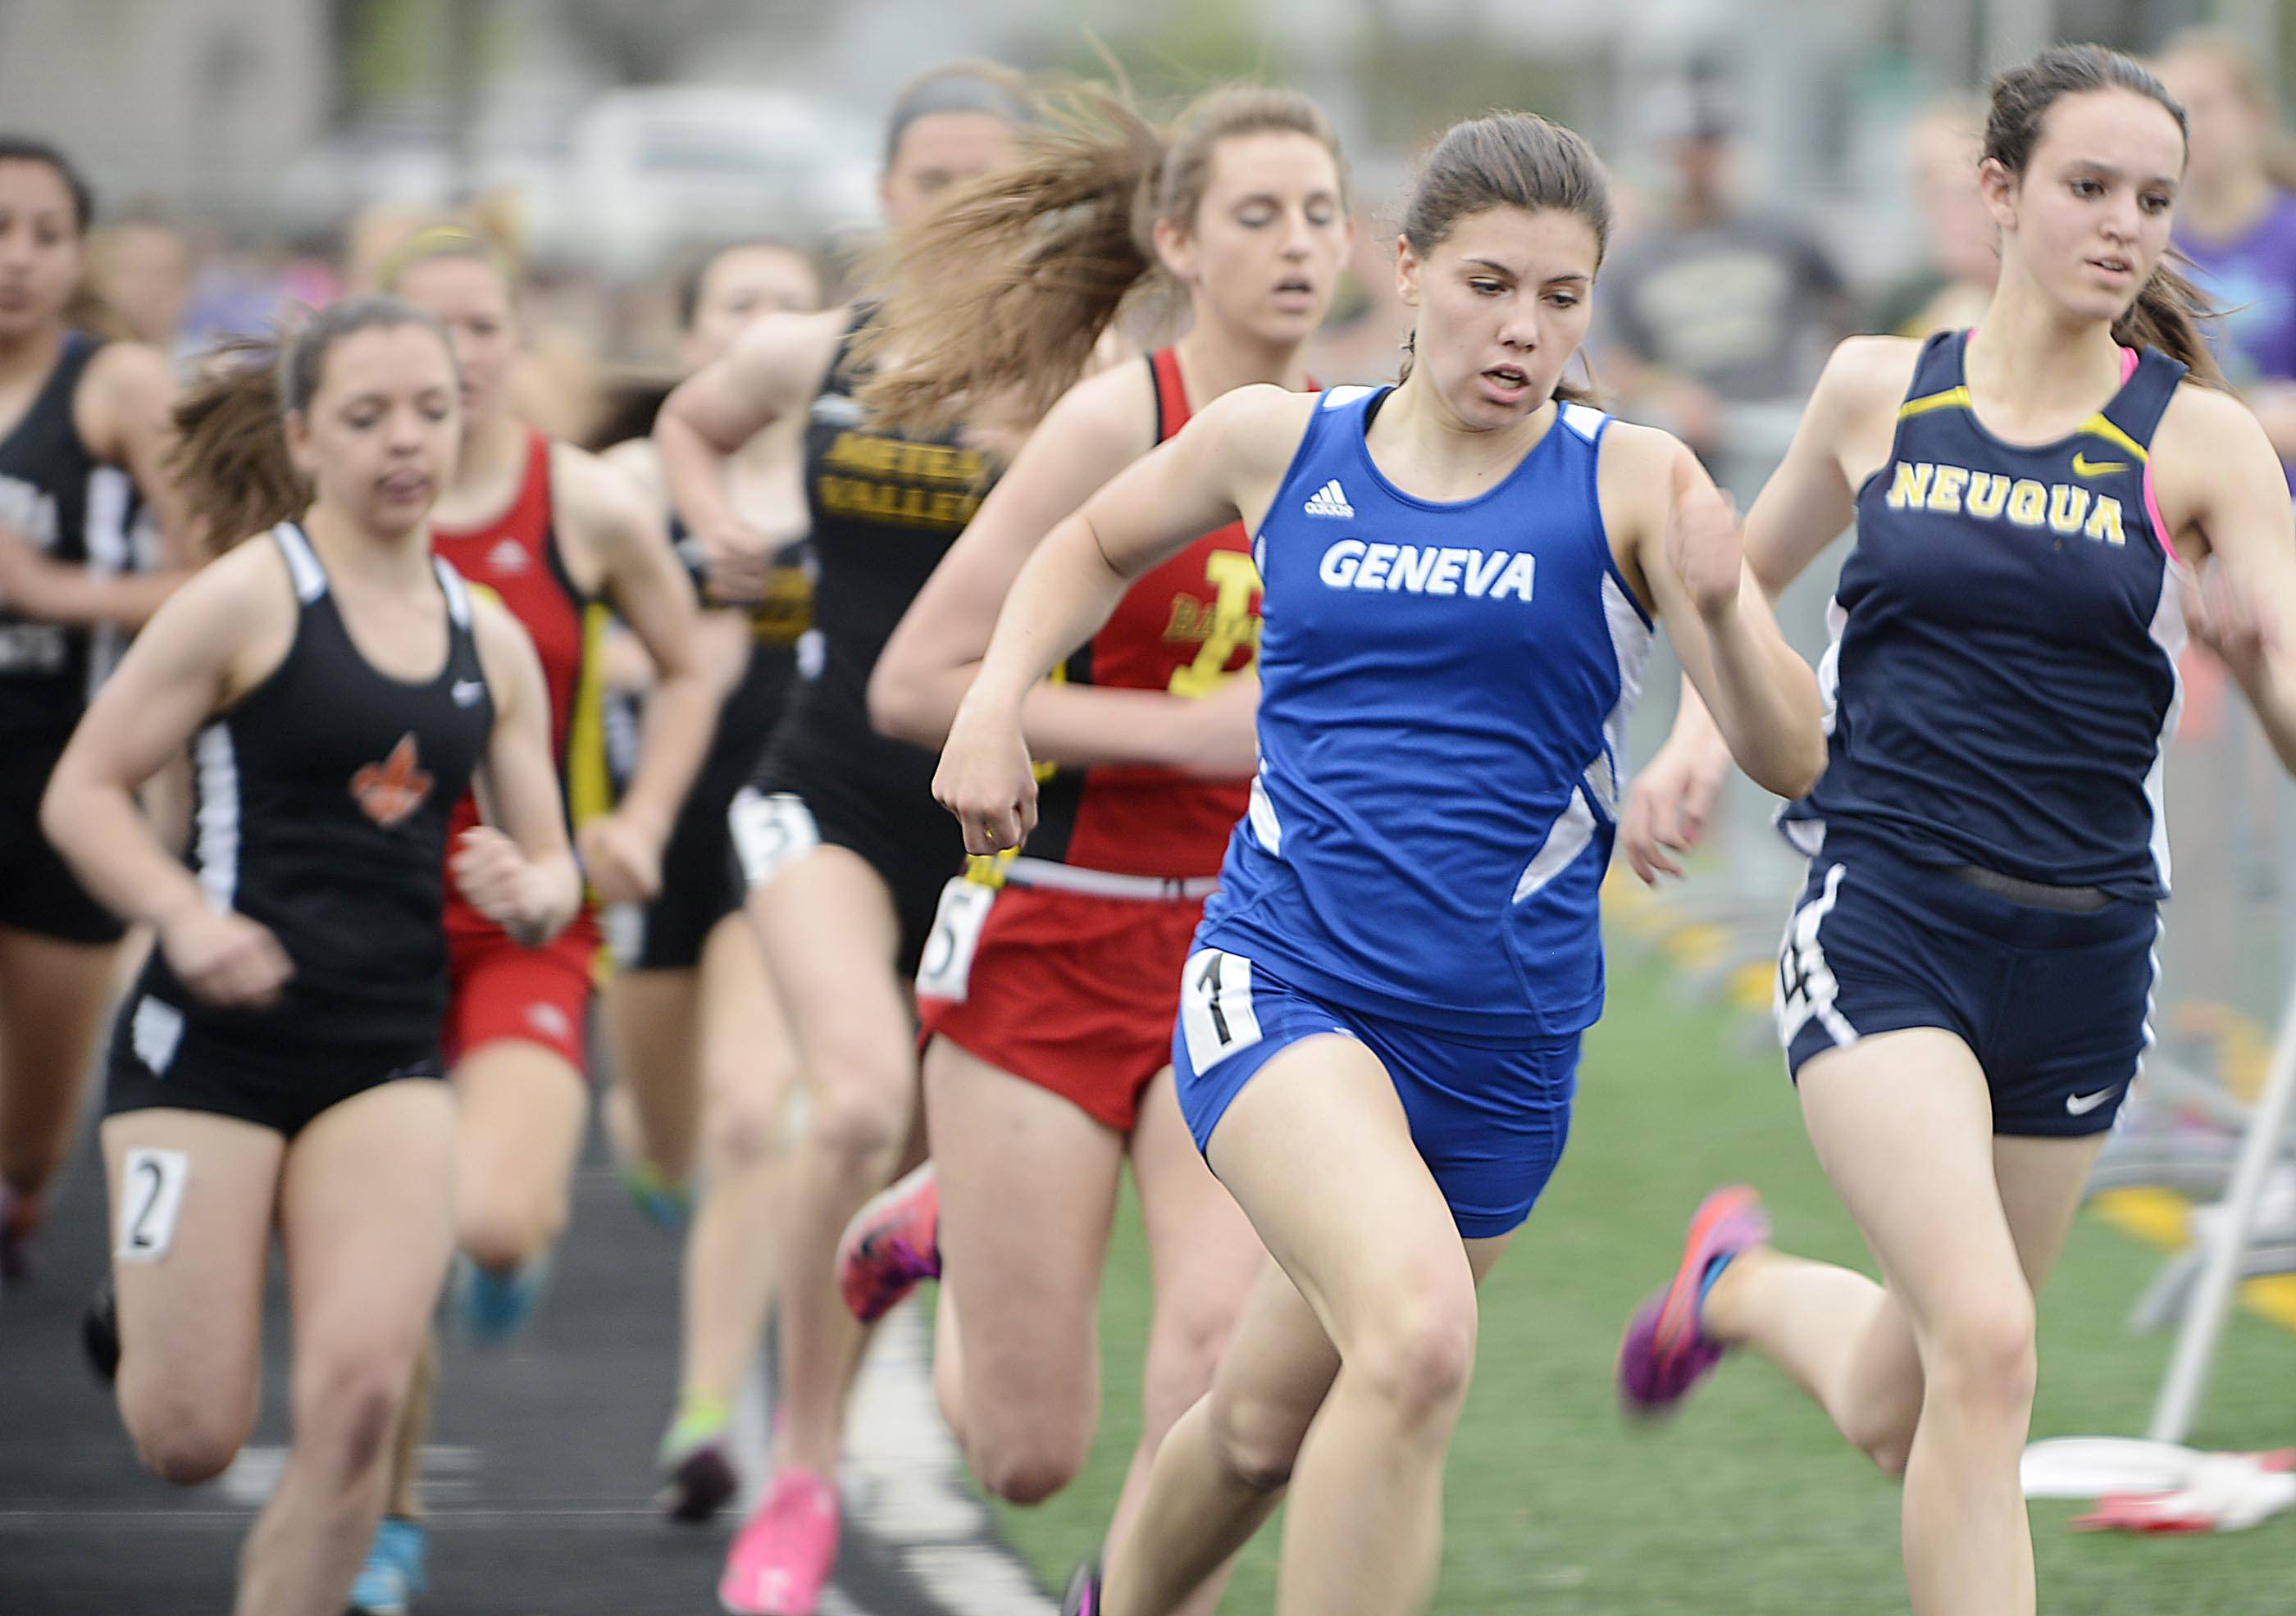 John Starks/jstarks@dailyherald.comGeneva's Kathryn Adelman takes an outside lane around turn one in on her way to a victory in the 800 meter run Thursday at the Upstate Eight Conference girls track meet at Geneva High School.